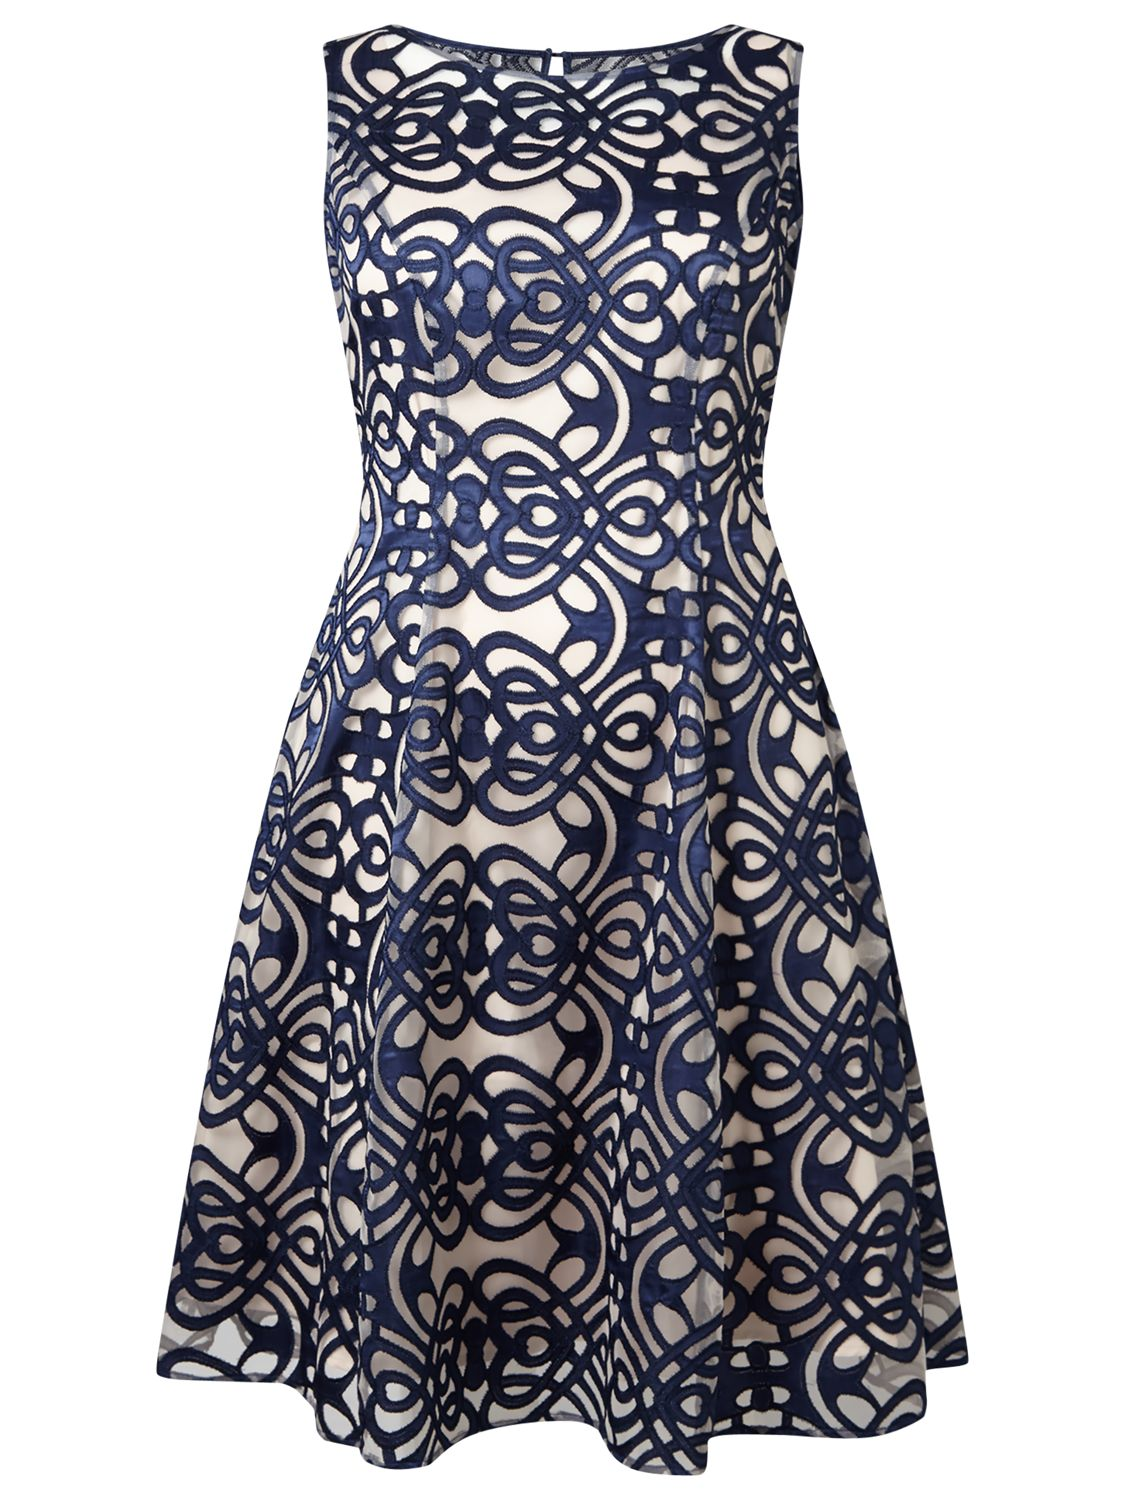 Studio 8 Studio 8 Raquel Dress, Navy